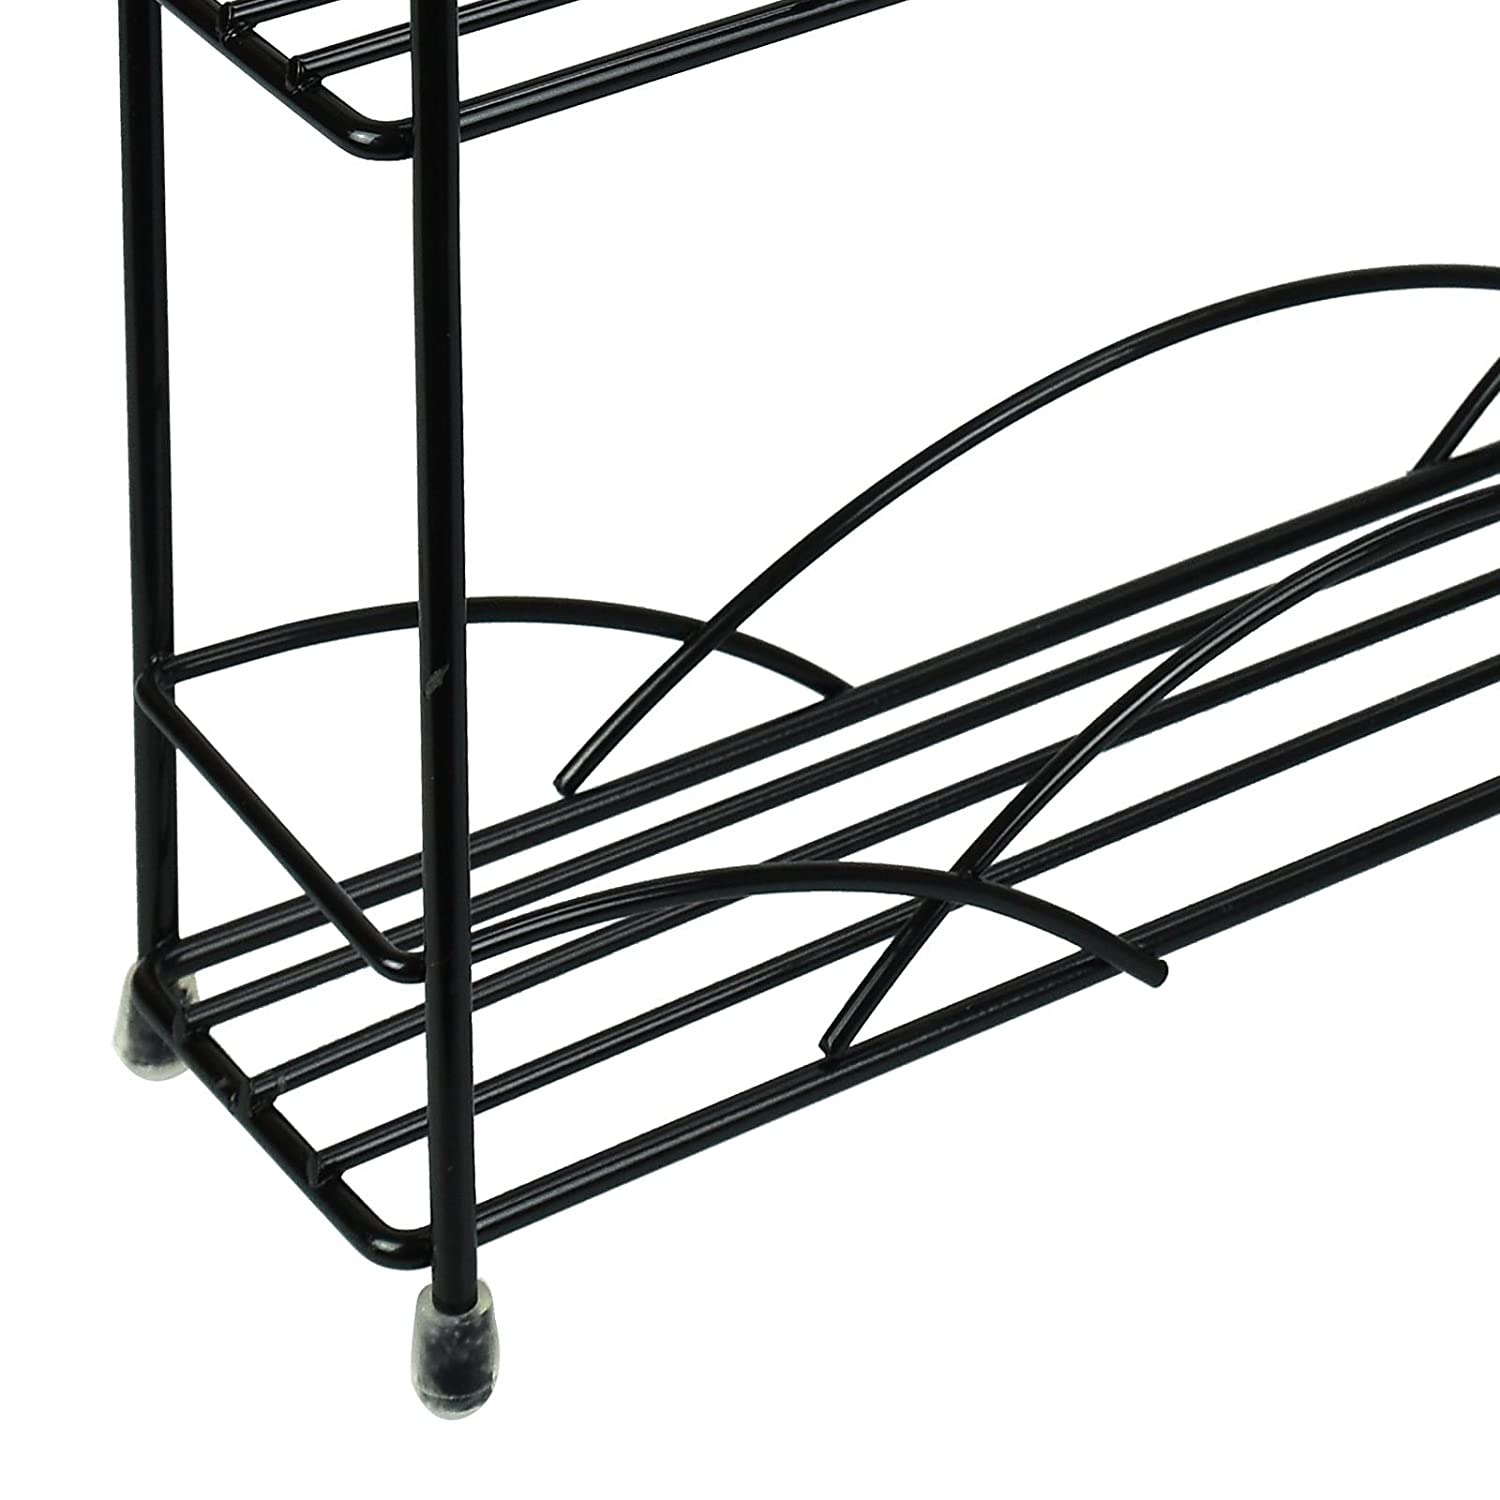 free standing spice rack aniser kitchen cupboard storage shelf Ddj SX2 free standing spice rack aniser kitchen cupboard storage shelf powder coated metal anizer for herb jars 3 tier stand by asab curve